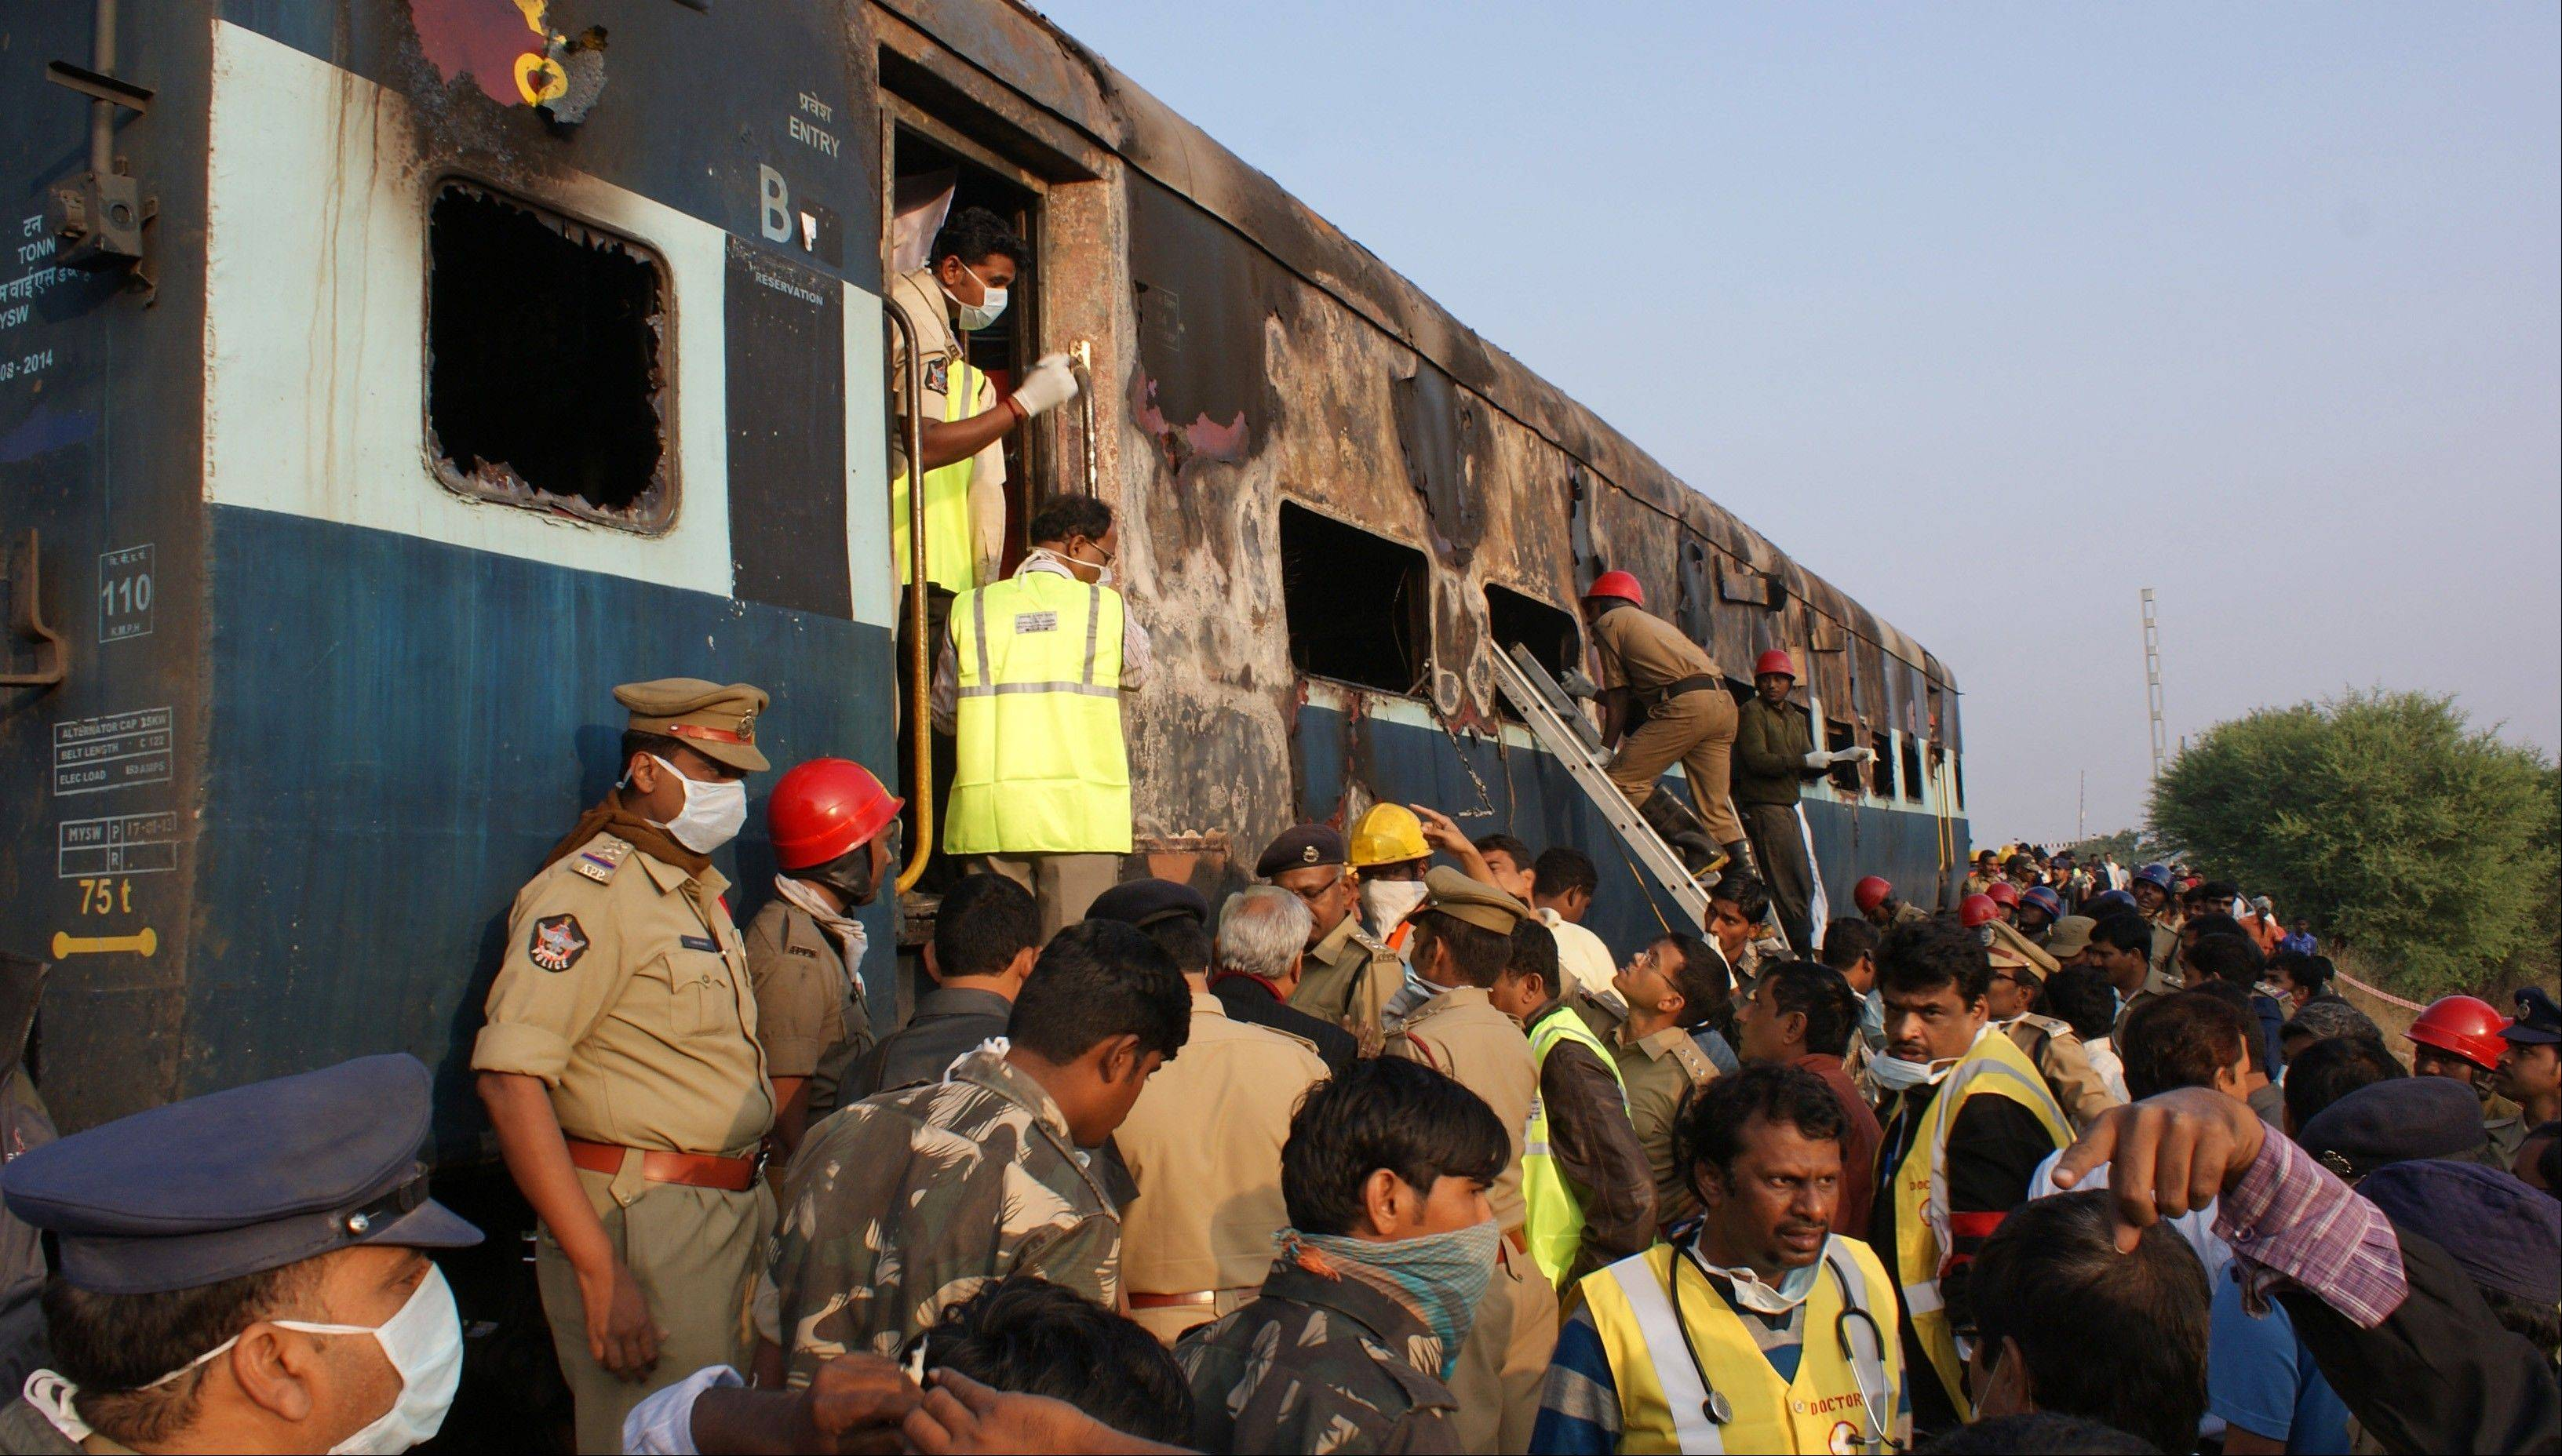 Policeman and firefighters search for victims of a train accident at Kothacheruvu, about 155 kilometers north of Bangalore, India.